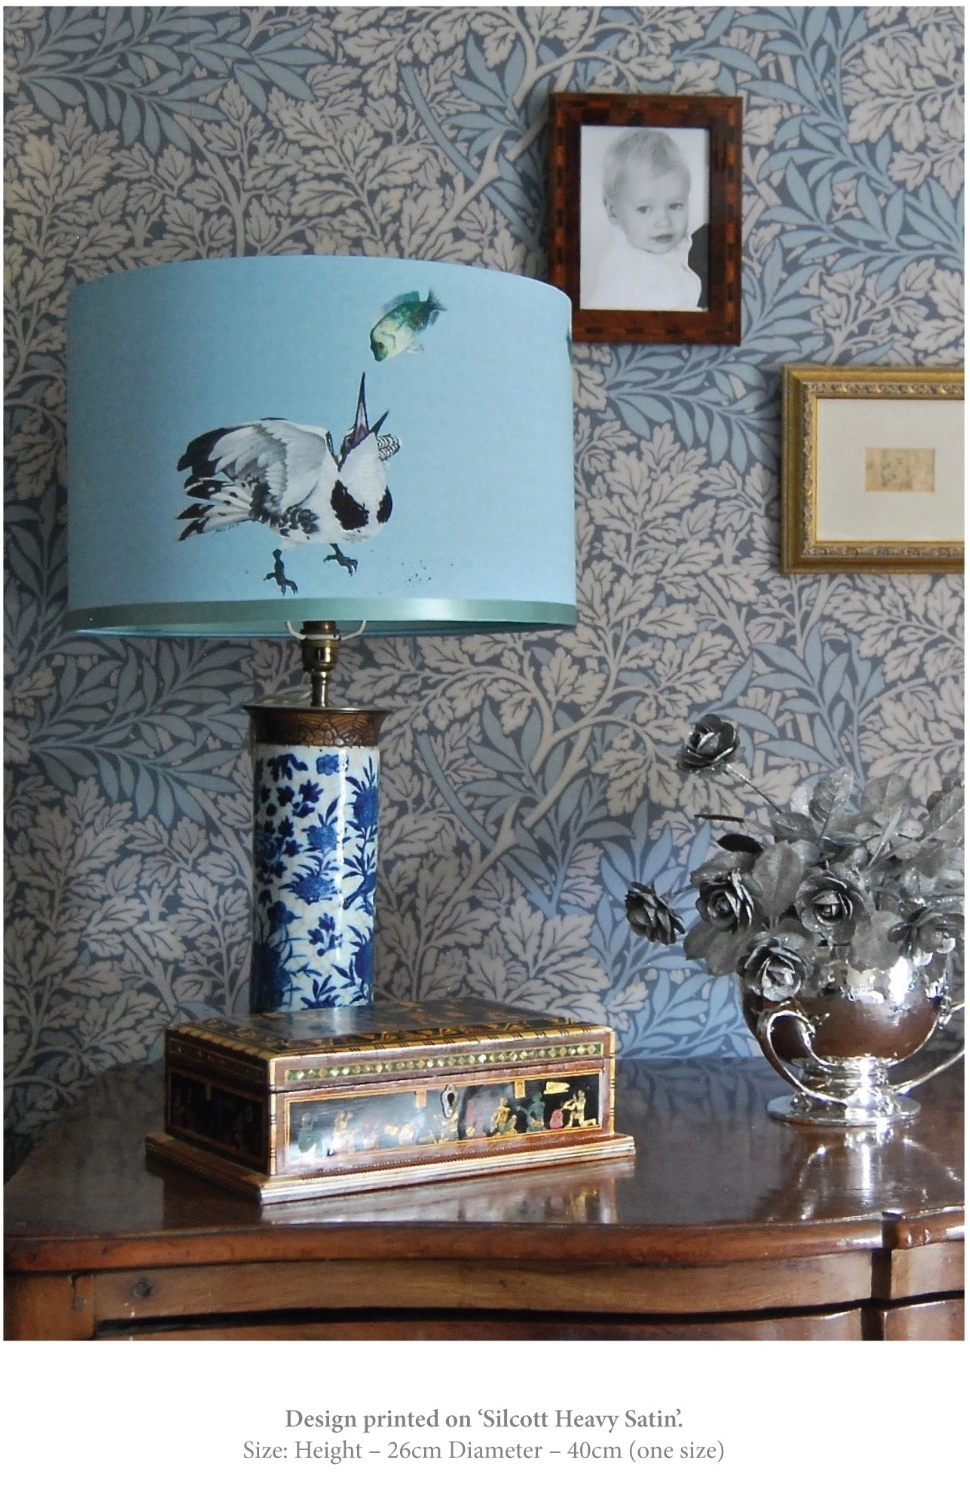 kingfisher bird lampshade